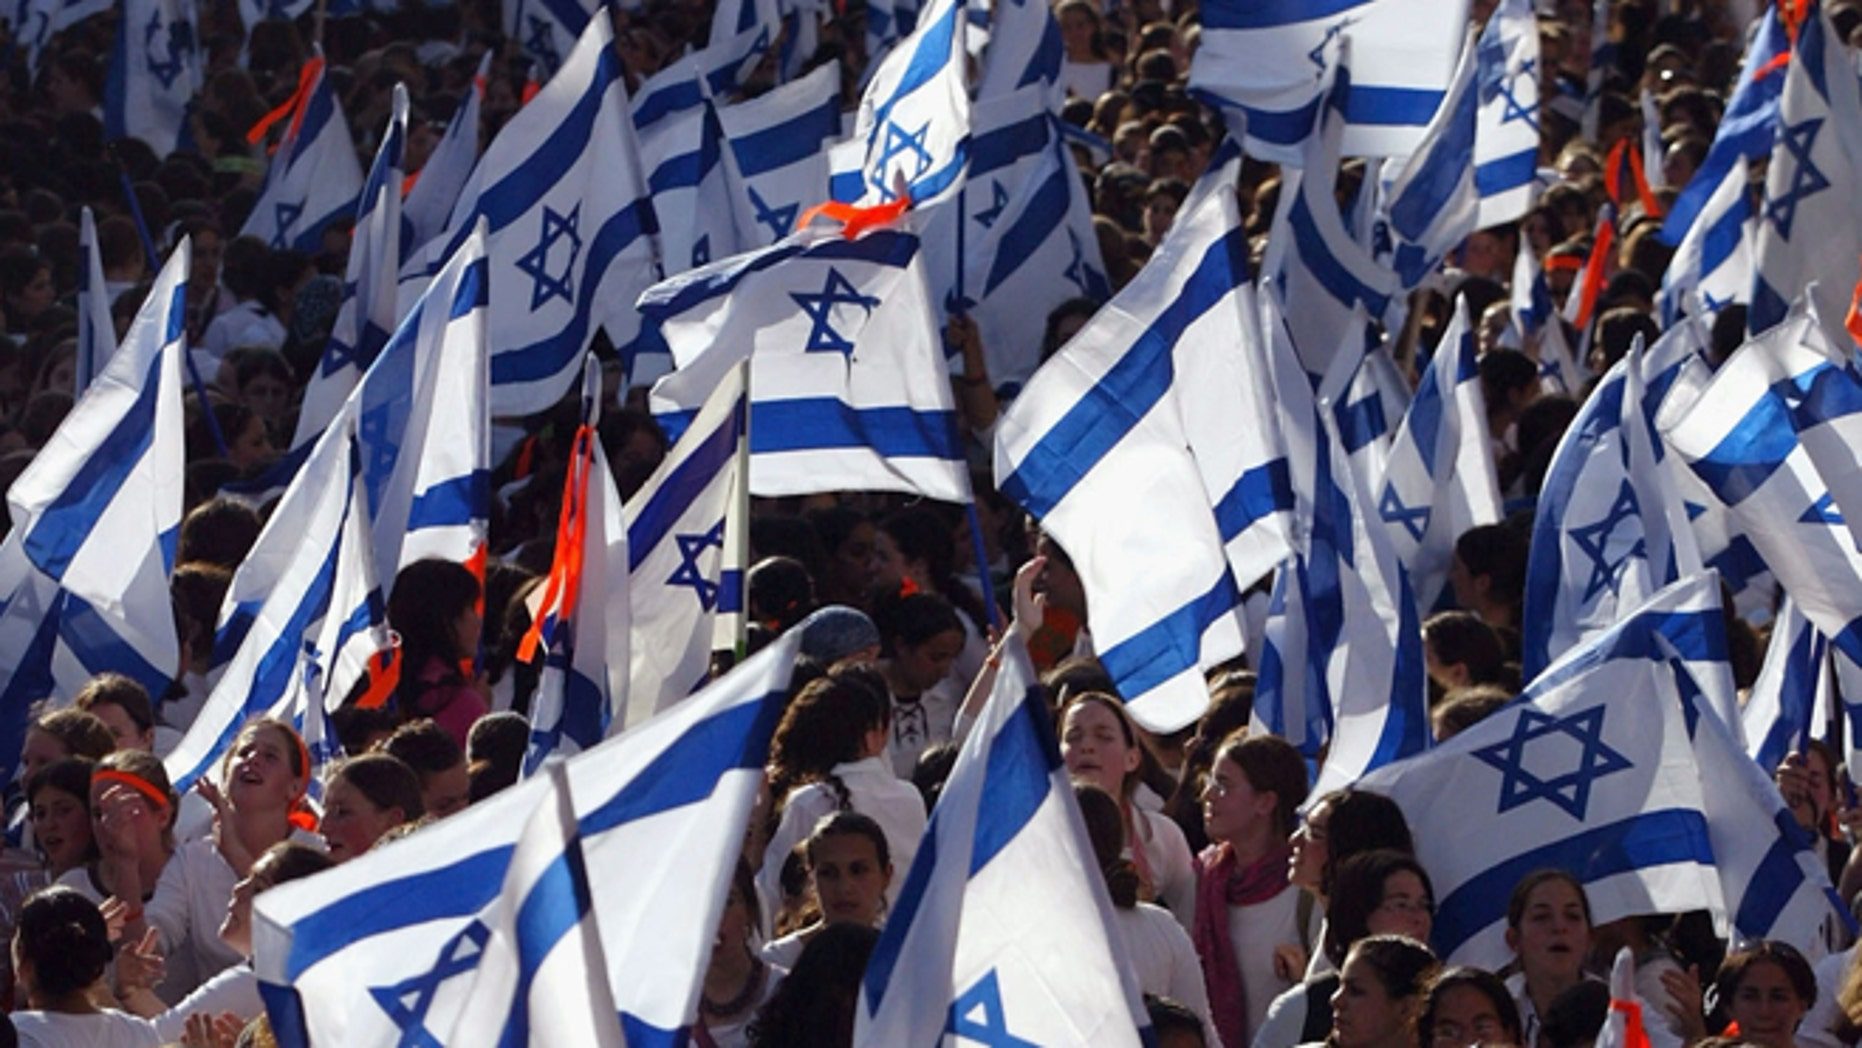 JERUSALEM, ISRAEL - JUNE 06: (ISRAEL OUT) Israeli nationalists wave the flags as they dance and march in the streets during a parade marking Jerusalem Day, June 6, 2005 in central Jerusalem, Israel. Thousands of nationalist Israelis marked Jerusalem Day, the 38th anniversary of the unification of Jerusalem under Israeli rule in 1967. (Photo by Uriel Sinai/Getty Images)